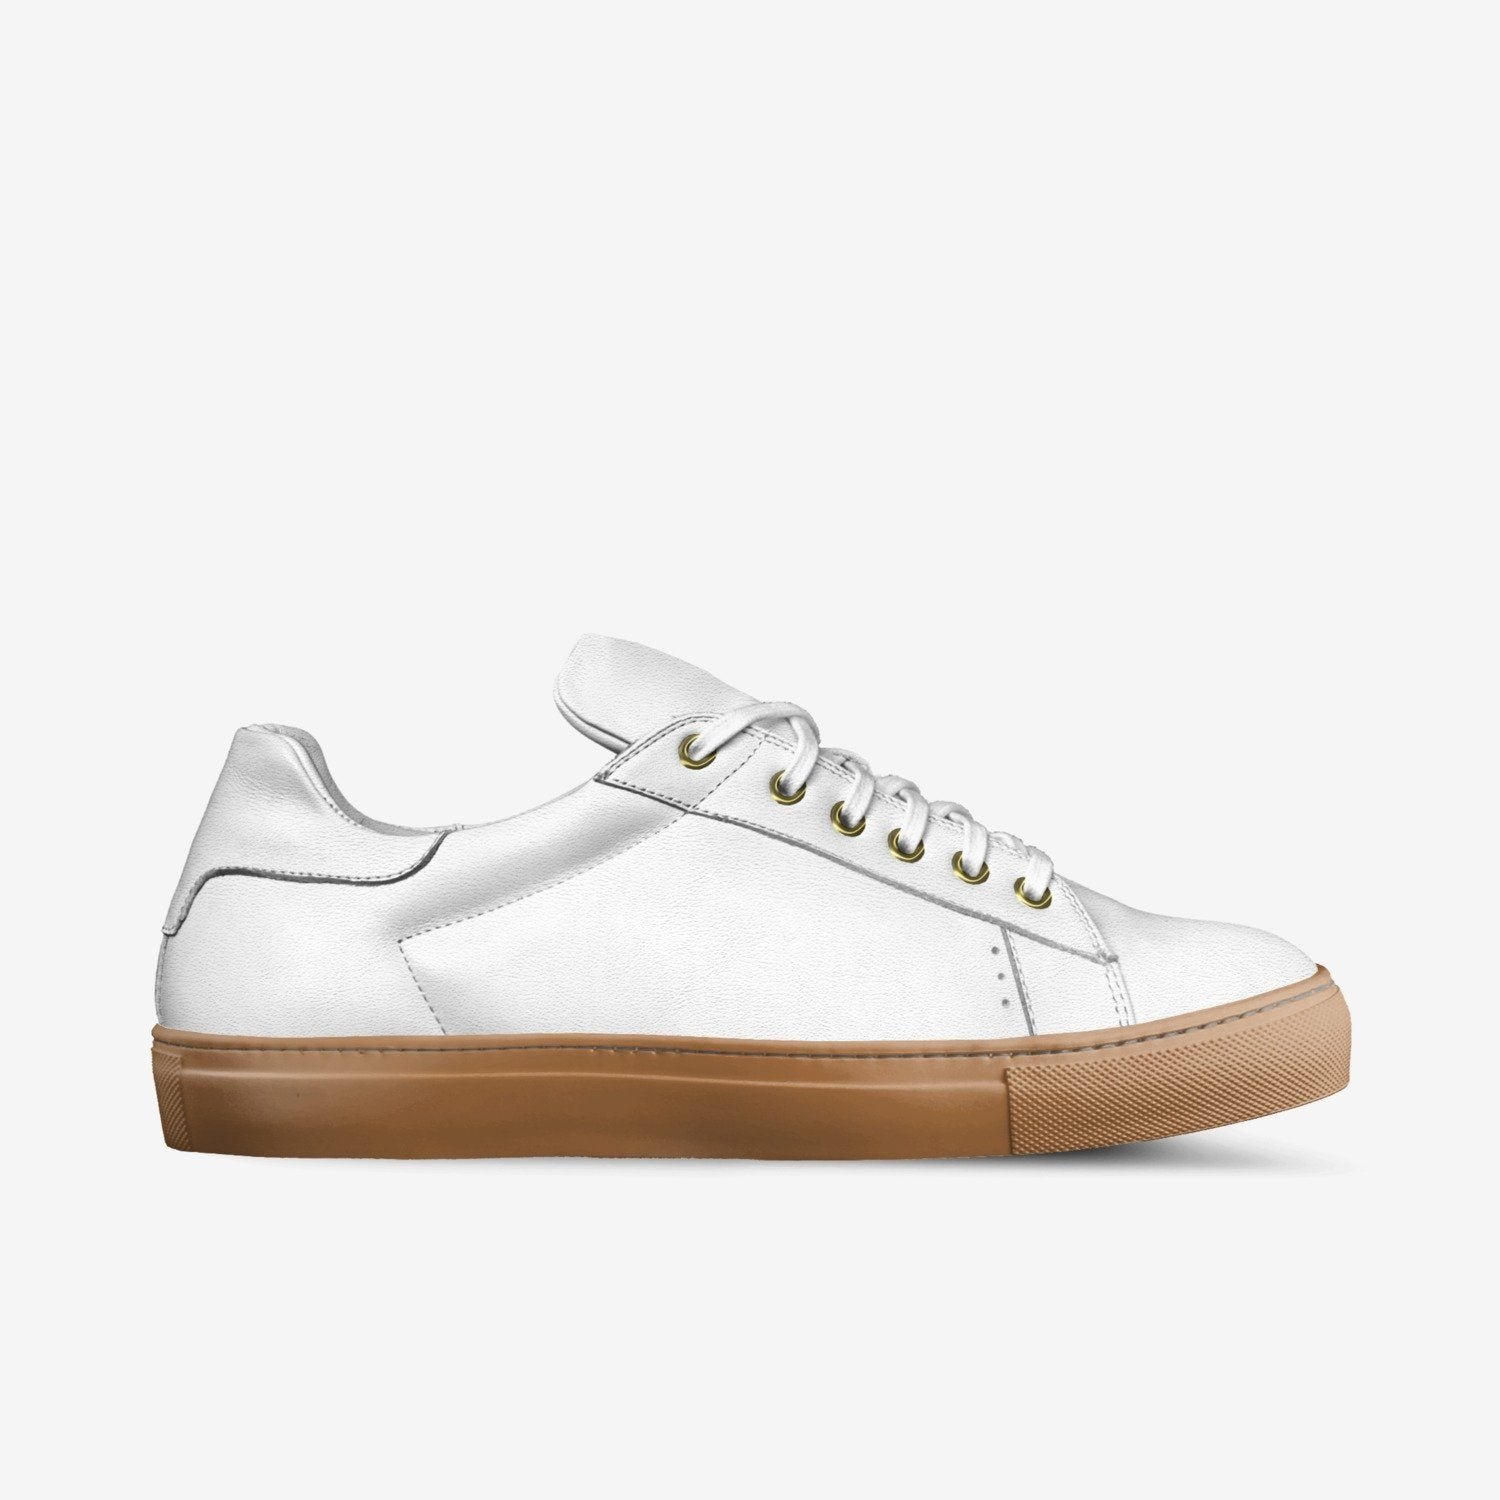 """LORENZO"" LEATHER/GUM SOLE SNEAKERS IN MILK WHITE"